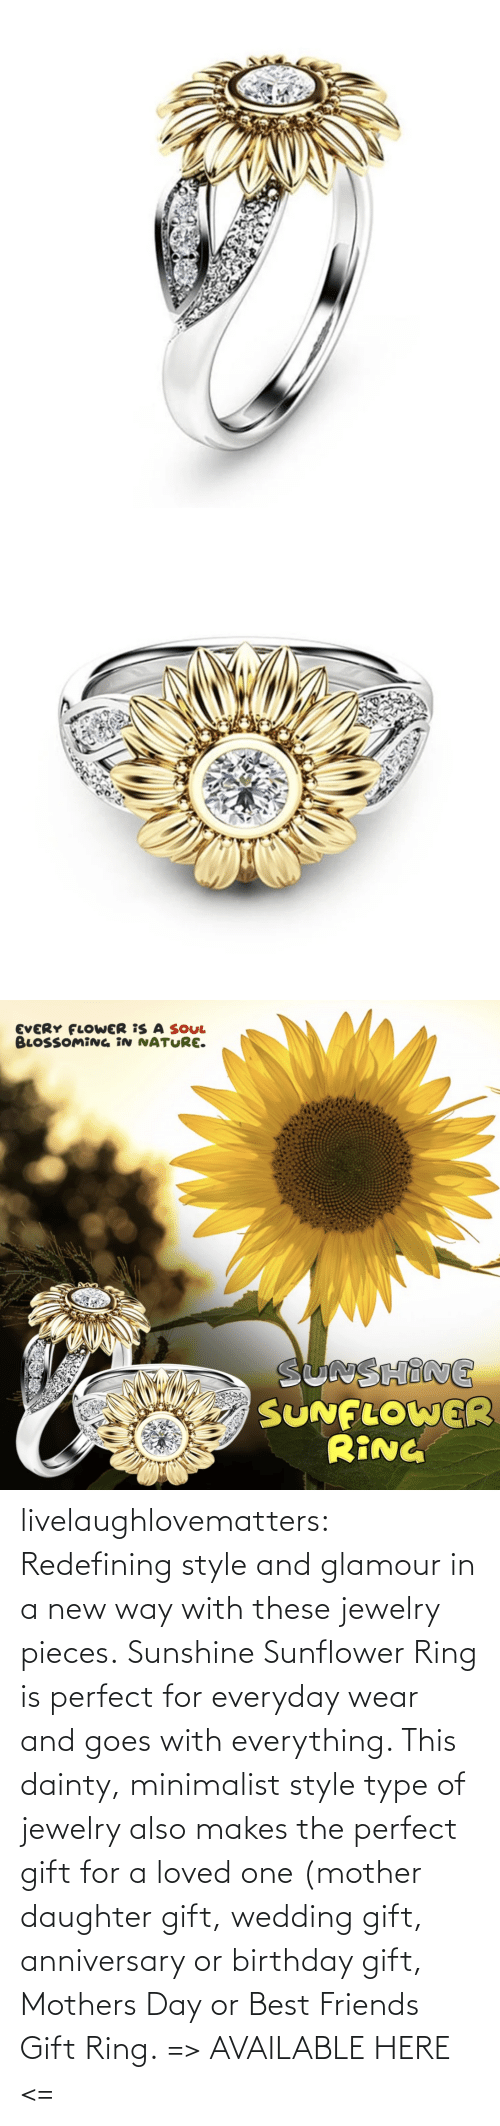 wear: livelaughlovematters: Redefining style and glamour in a new way with these jewelry pieces. Sunshine Sunflower Ring is perfect for everyday wear and goes with everything. This dainty, minimalist style type of jewelry also makes the perfect gift for a loved one (mother daughter gift, wedding gift, anniversary or birthday gift, Mothers Day or Best Friends Gift Ring. => AVAILABLE HERE <=